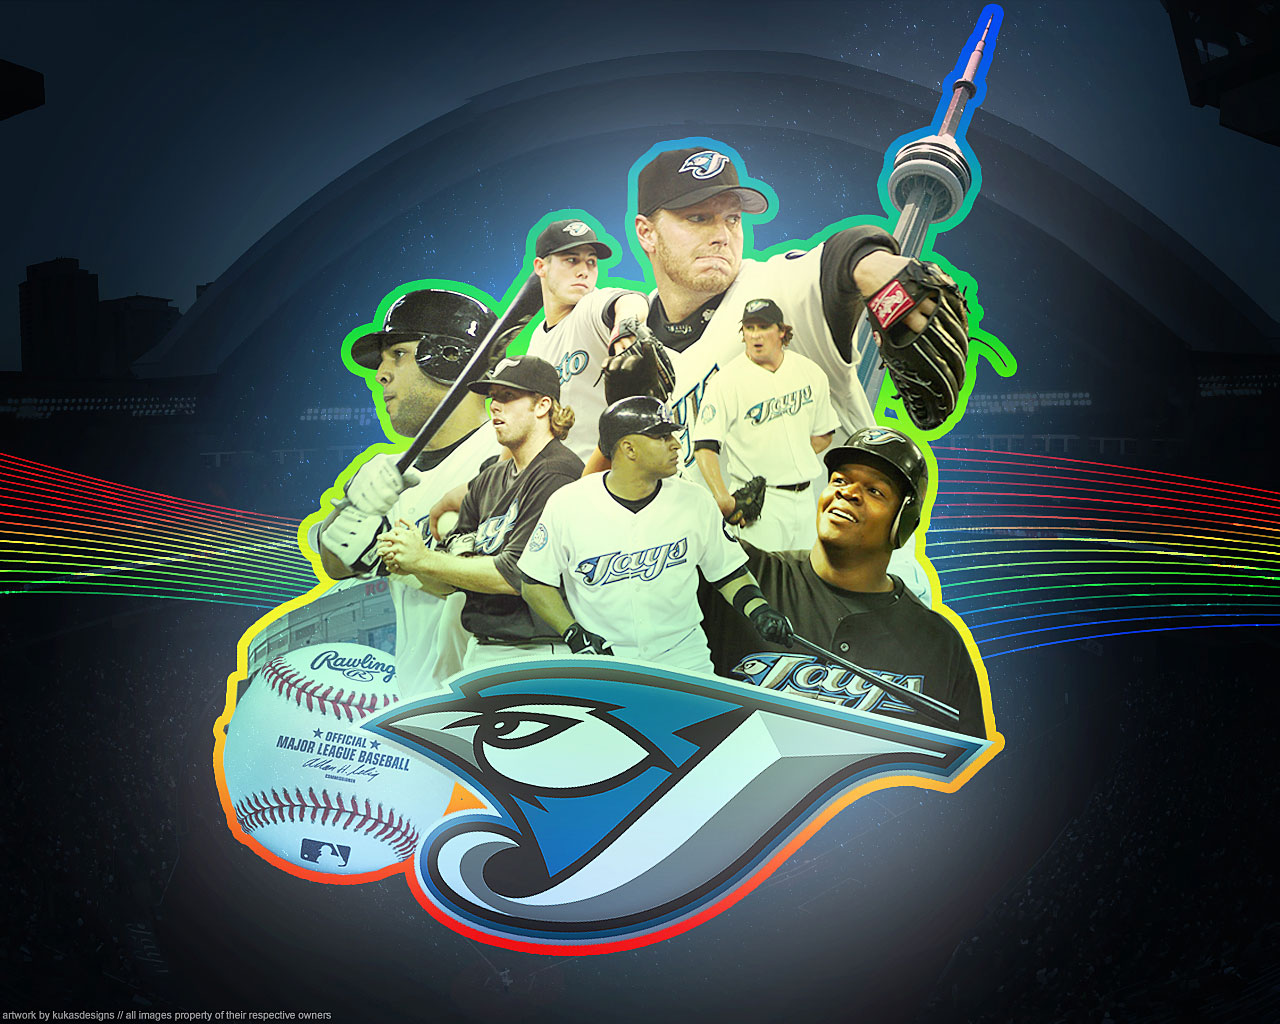 awesome toronto blue jays wallpaper petters foundation scandal twin cities petters xxx passes